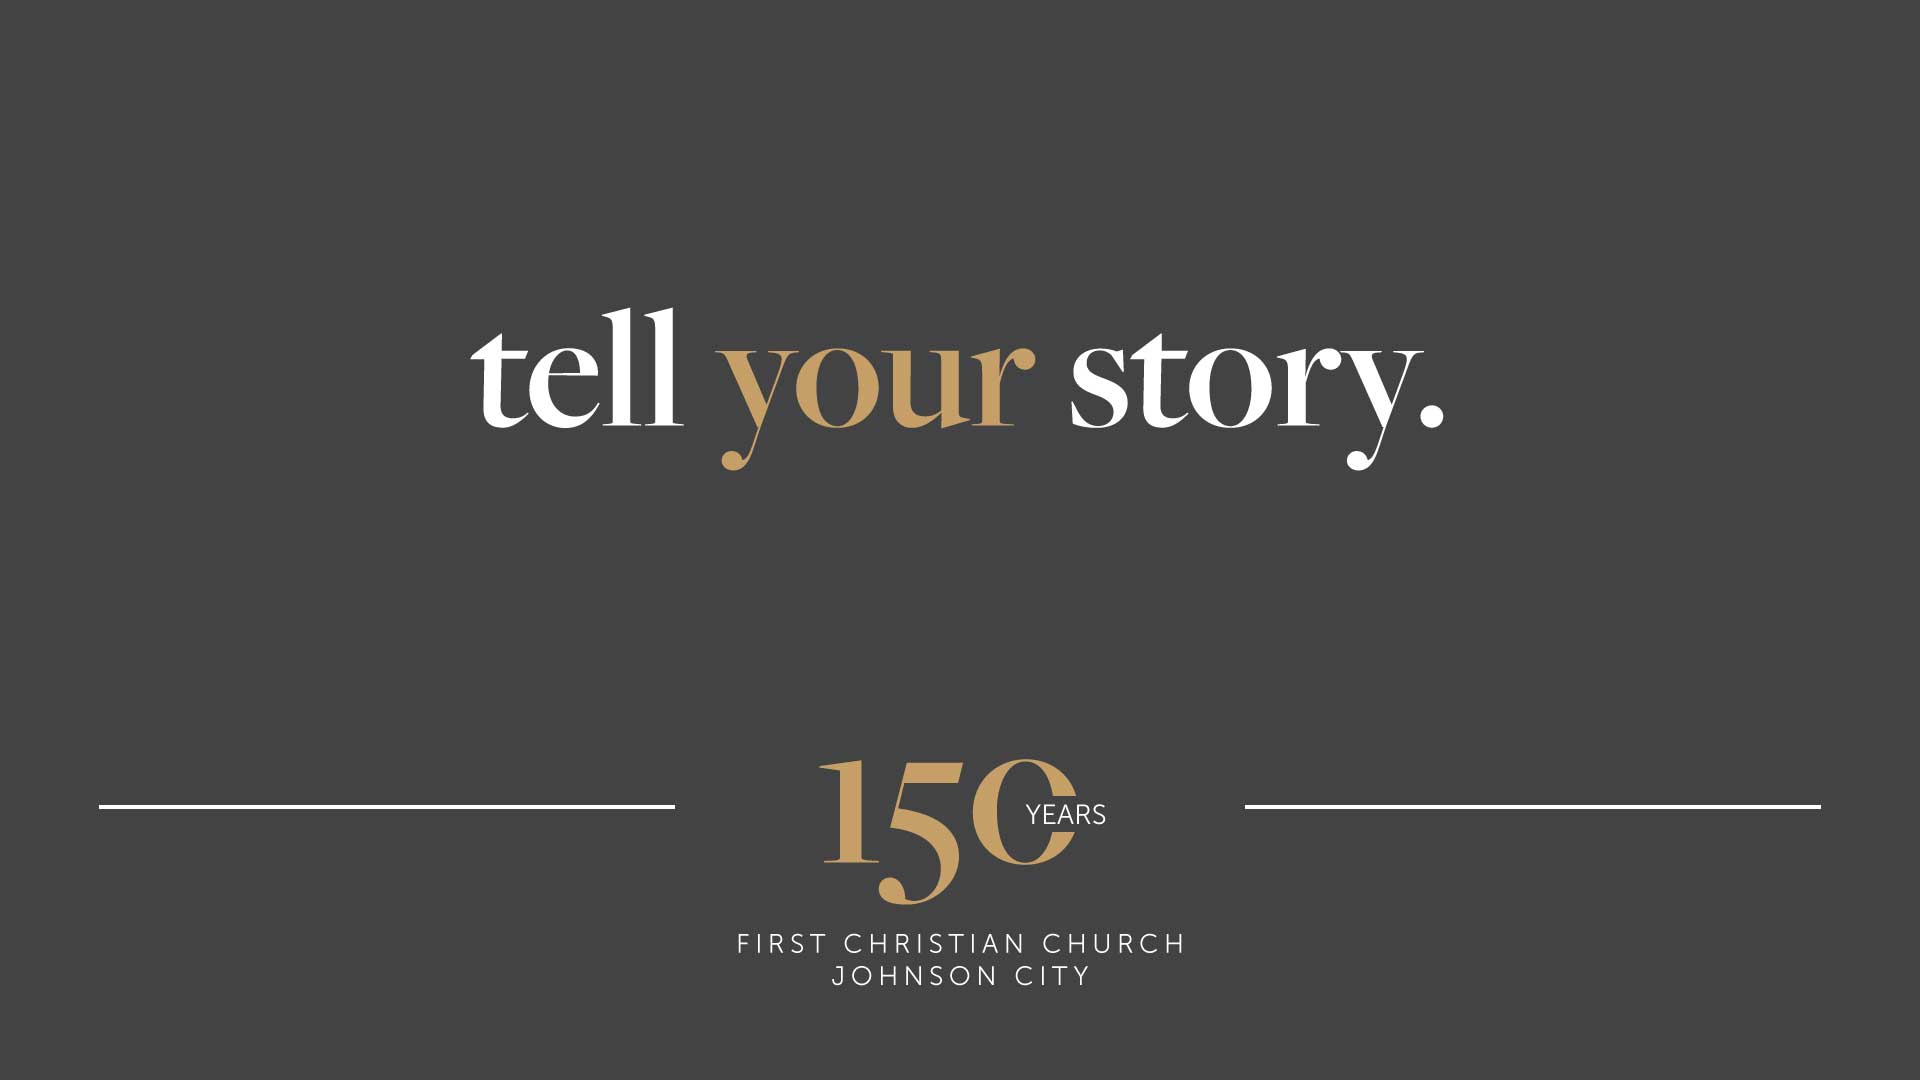 150th Anniversary Story Sharing